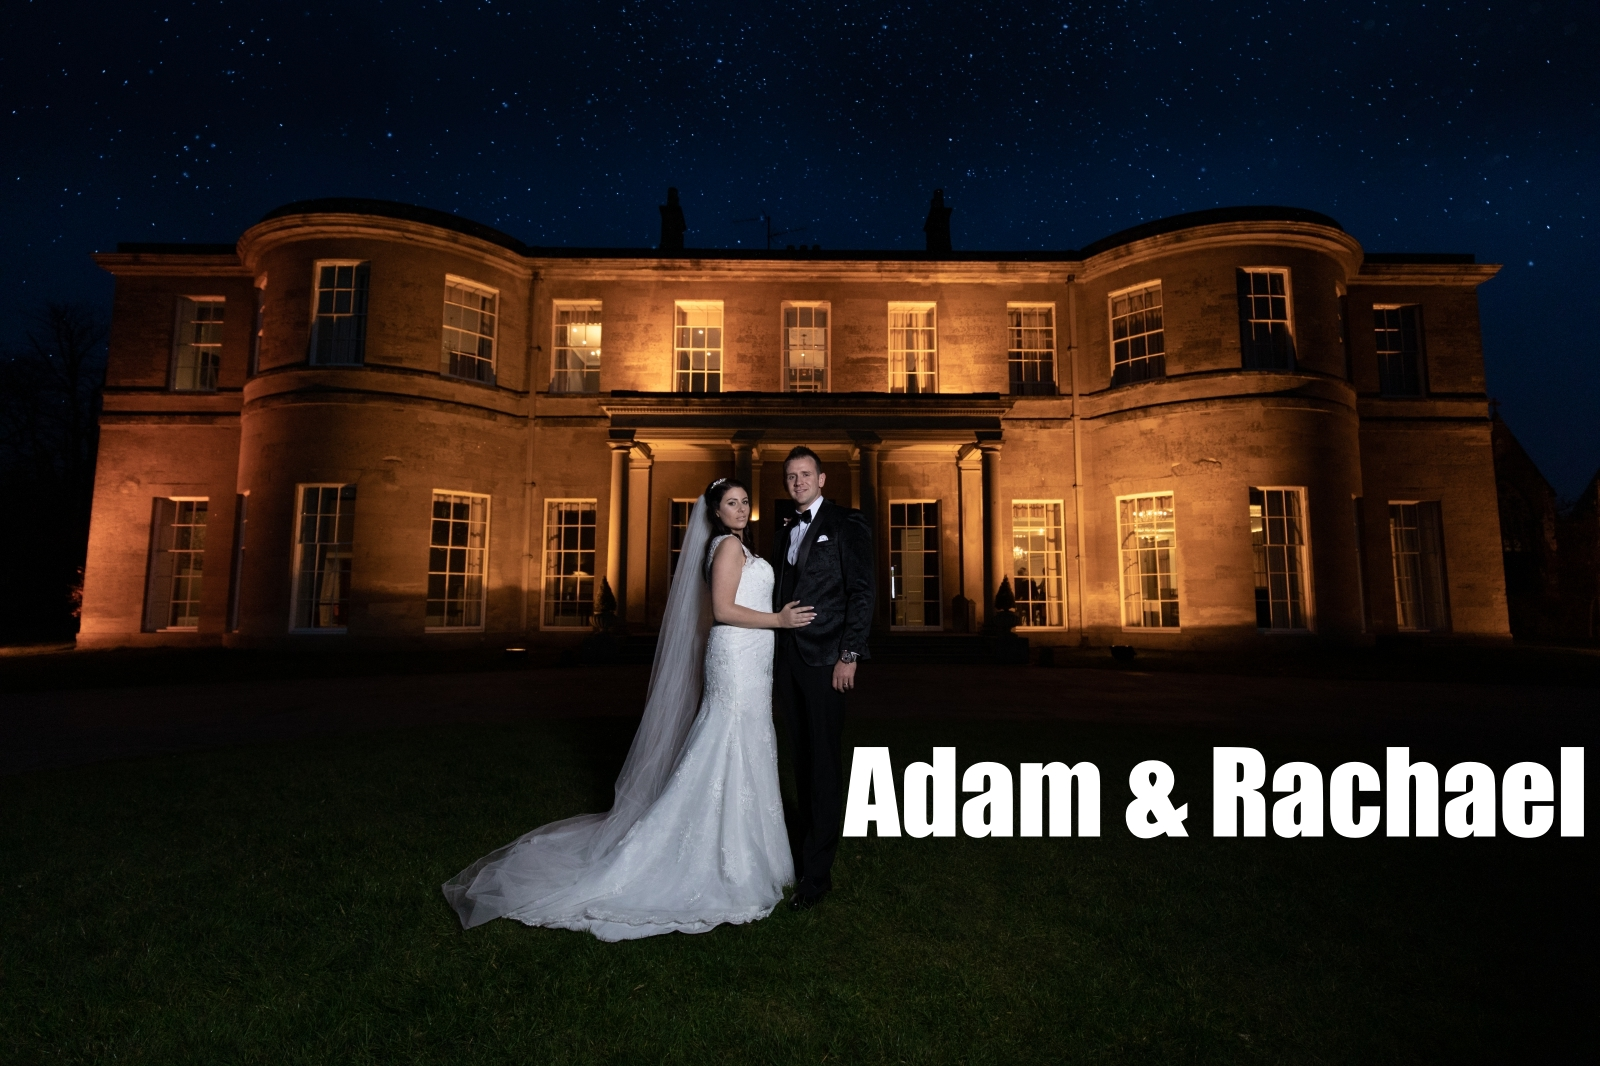 Adam & Rach - wedding page header.jpg